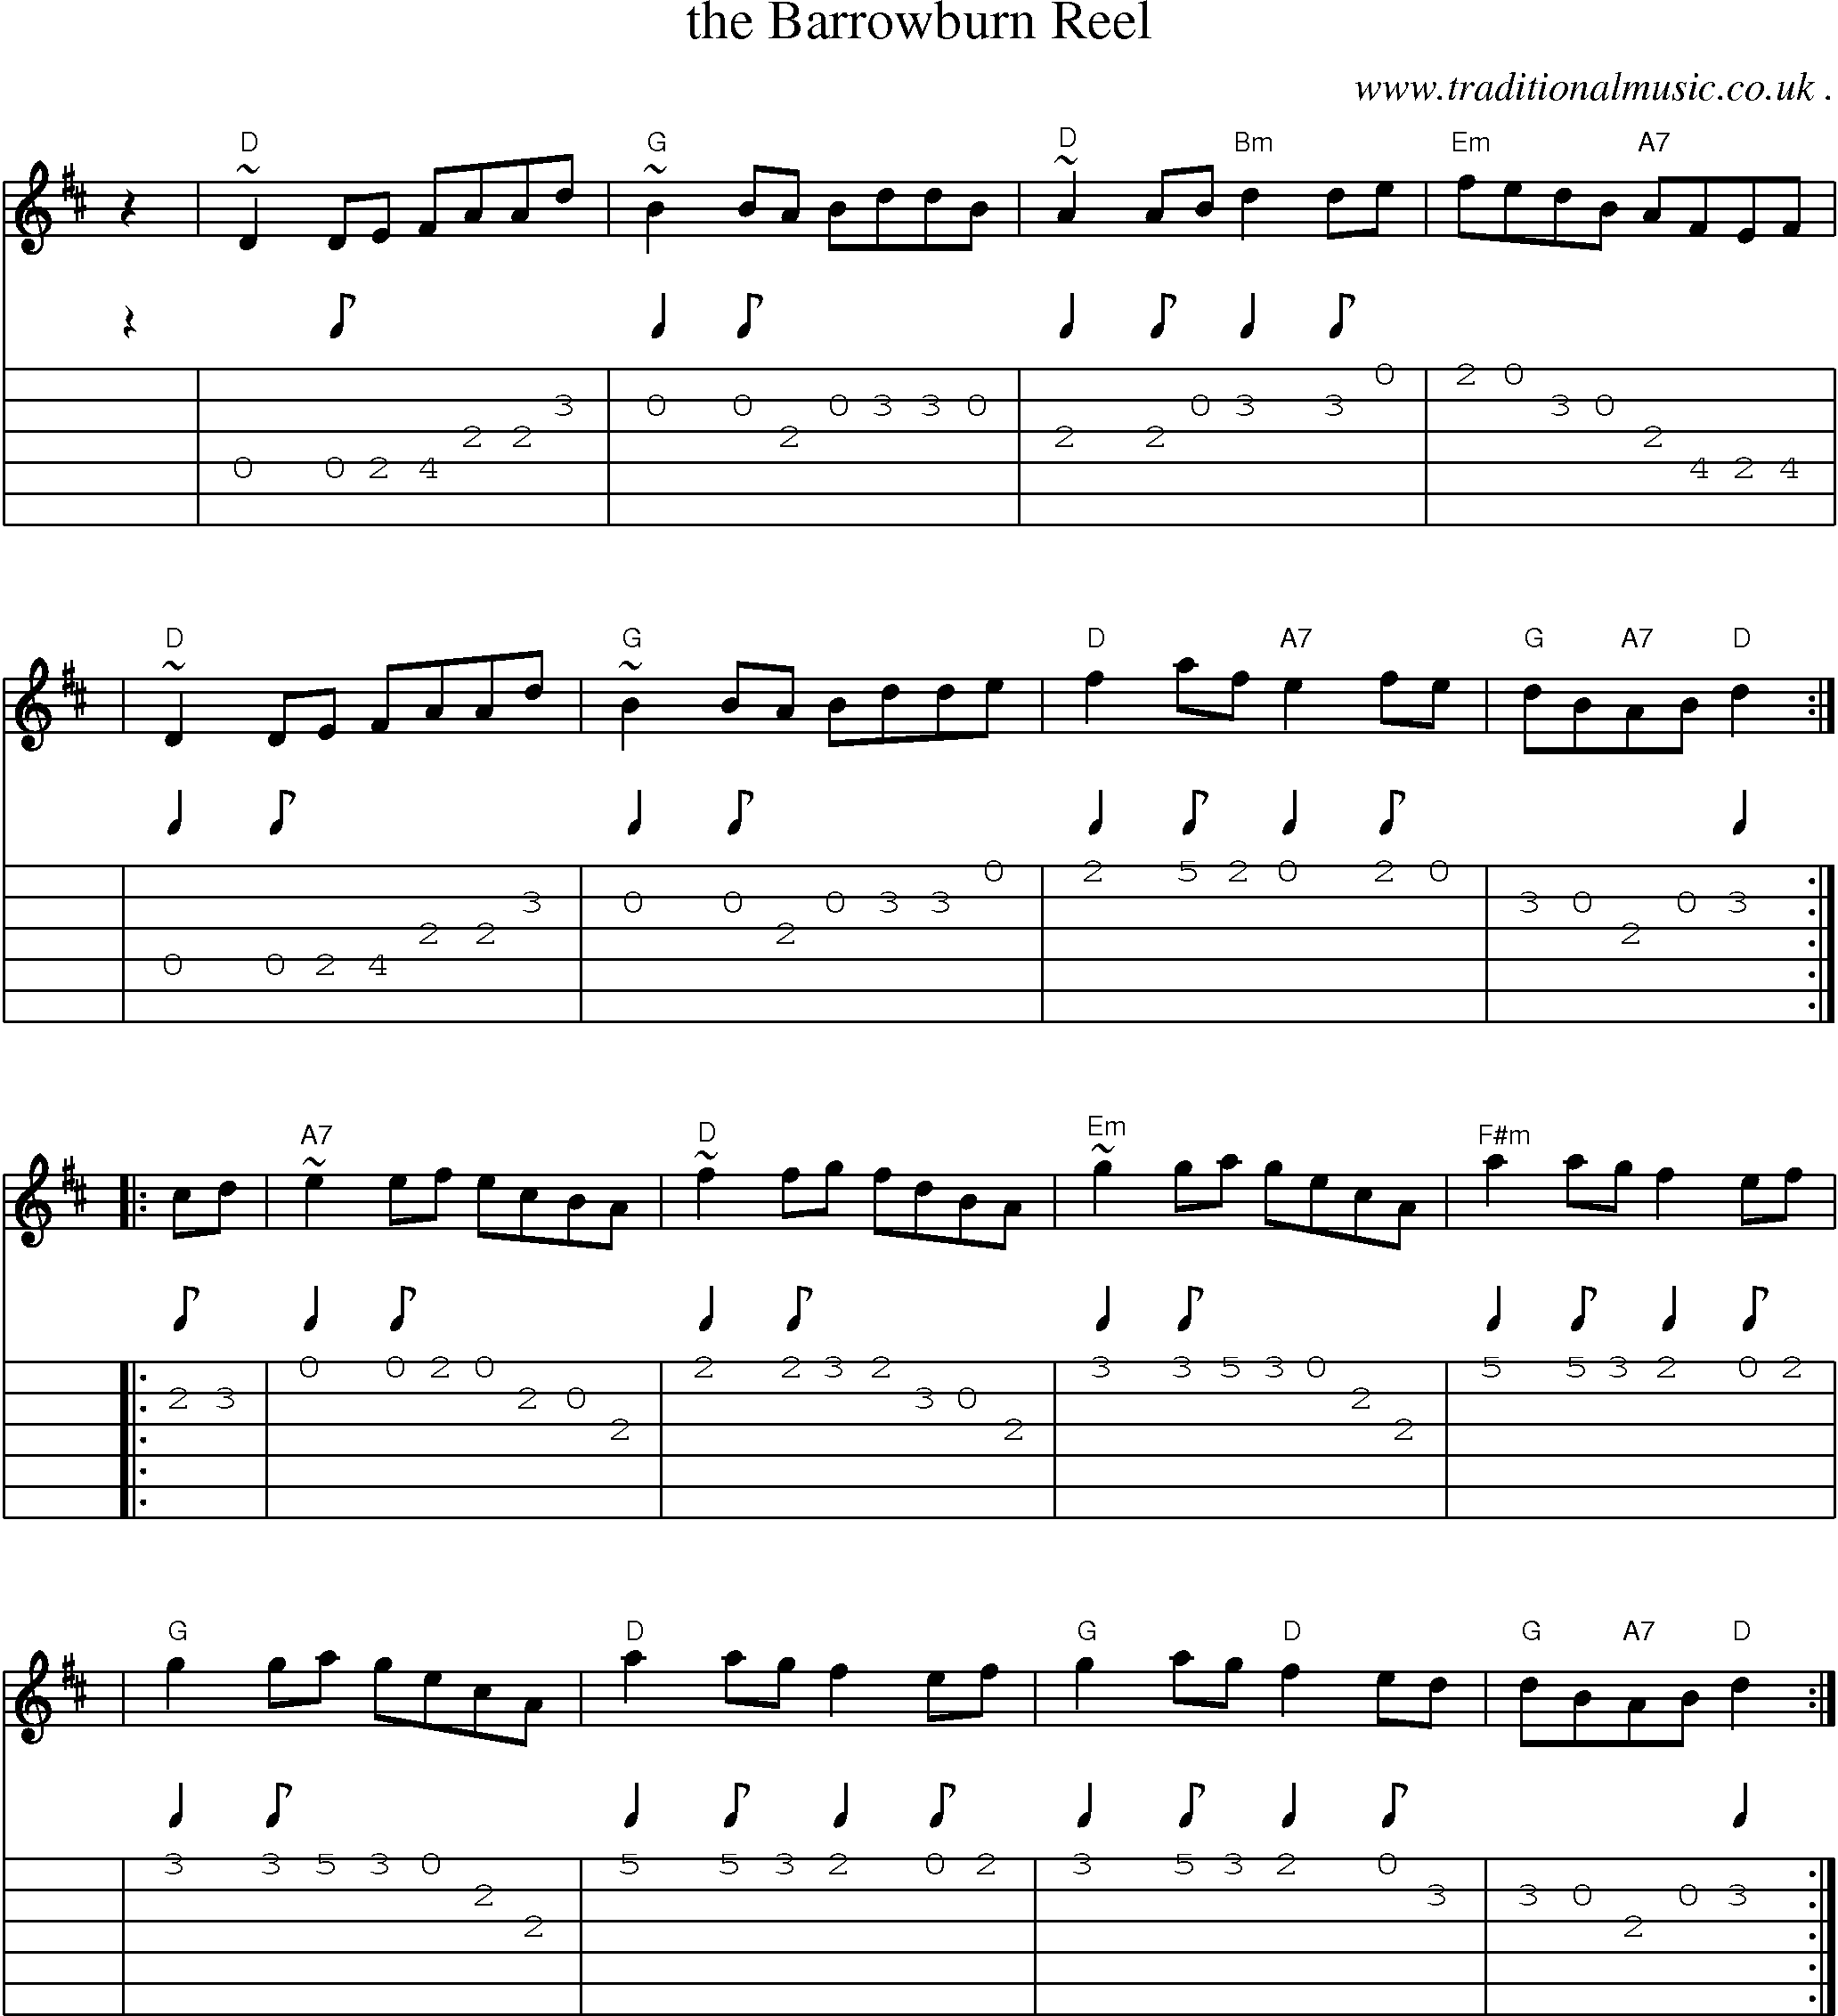 Scottish tune sheetmusic midi mp3 guitar chords tabs the sheet music score chords and guitar tabs for the barrowburn reel hexwebz Images